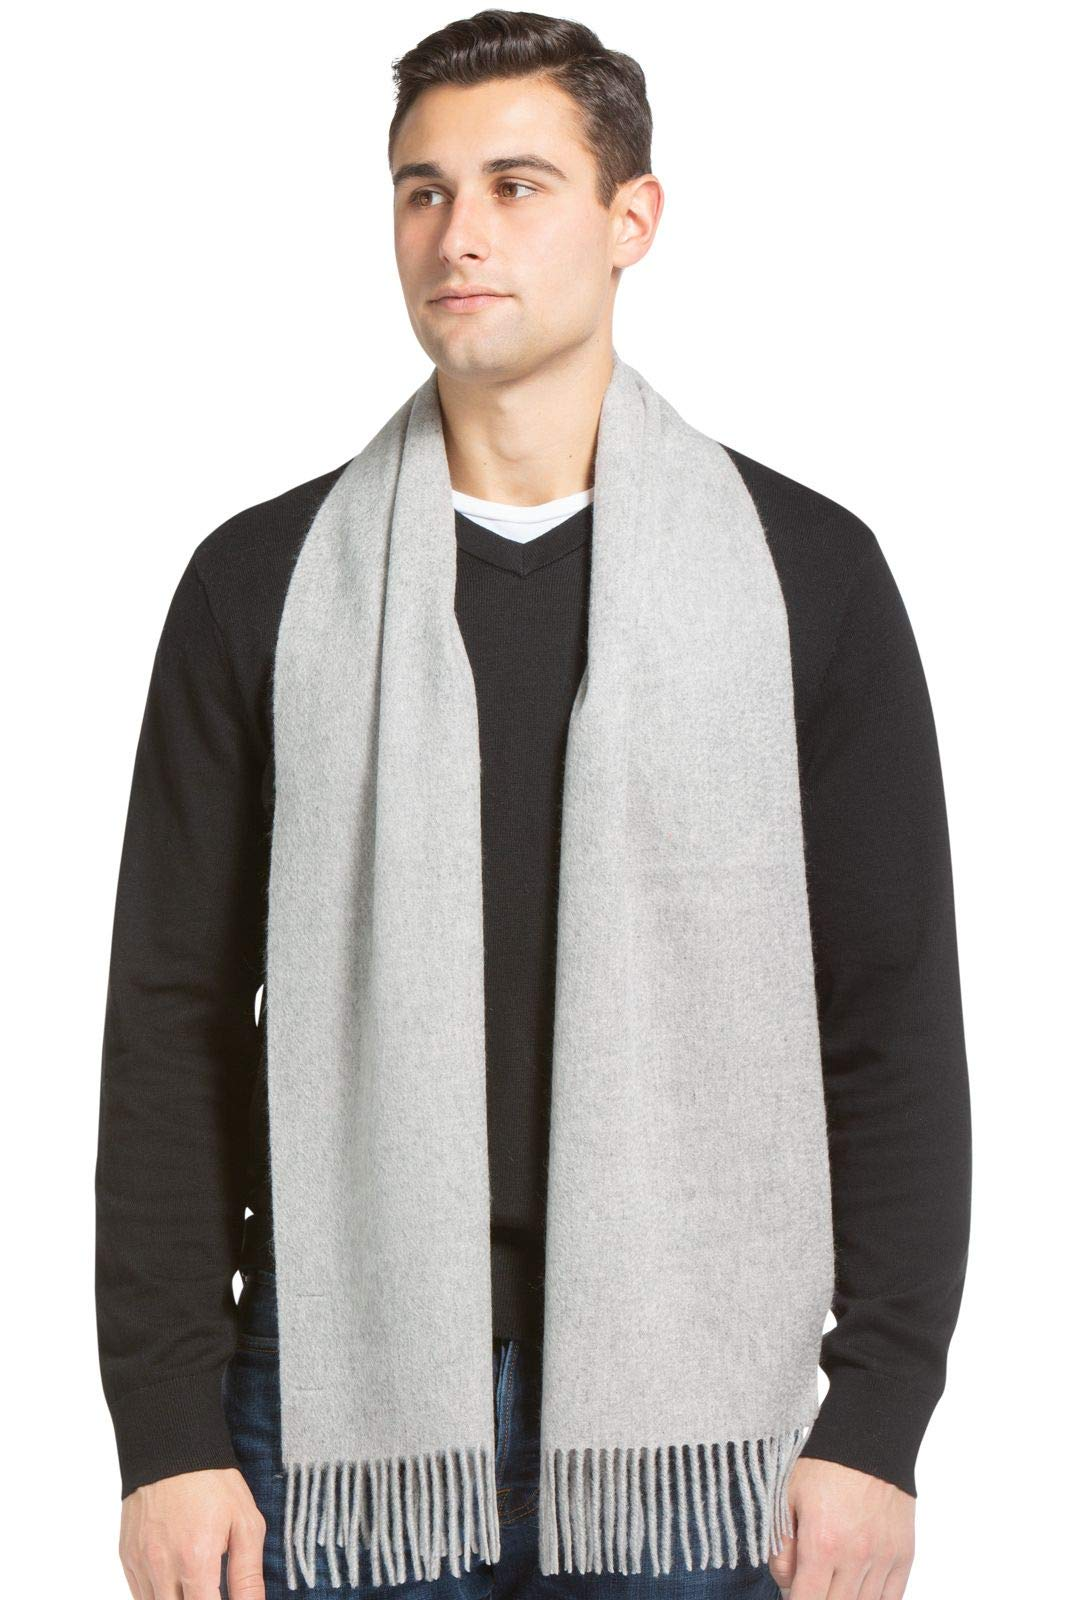 Fishers Finery Men's 100% Pure Cashmere Scarf; Warm and Stylish (Gray)